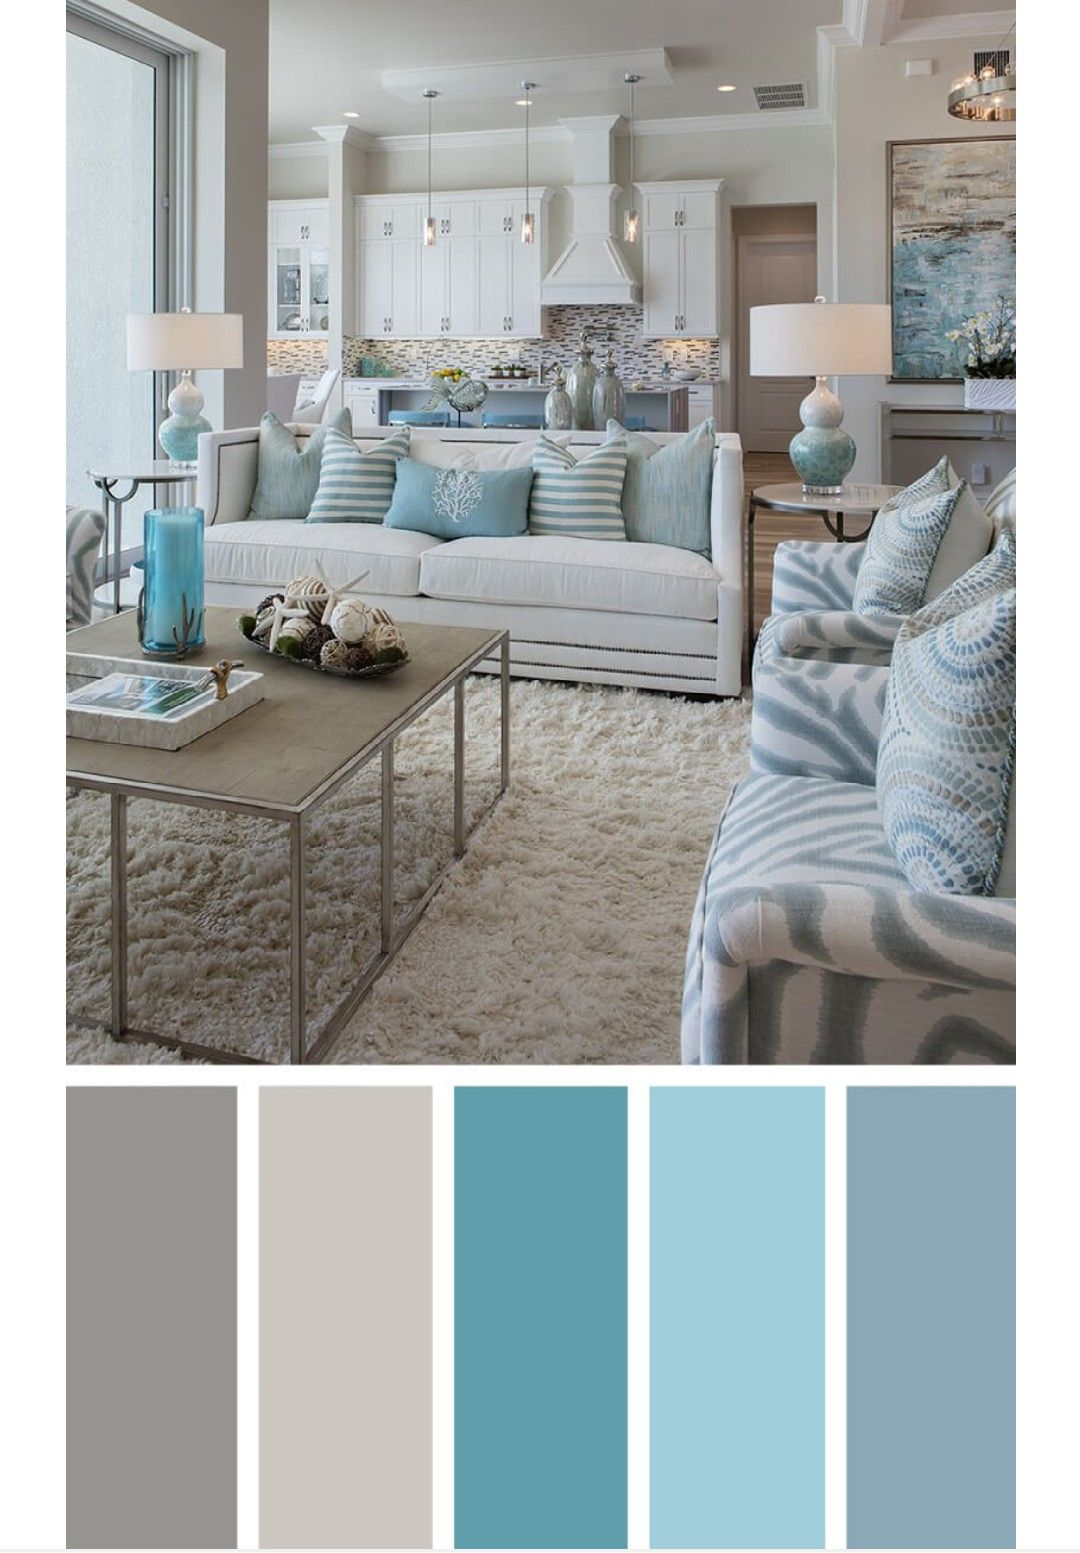 Pin By Hannah Moore On Interior Design Living Room Color Schemes Living Room Color Bedroom Color Schemes Color combinations living room